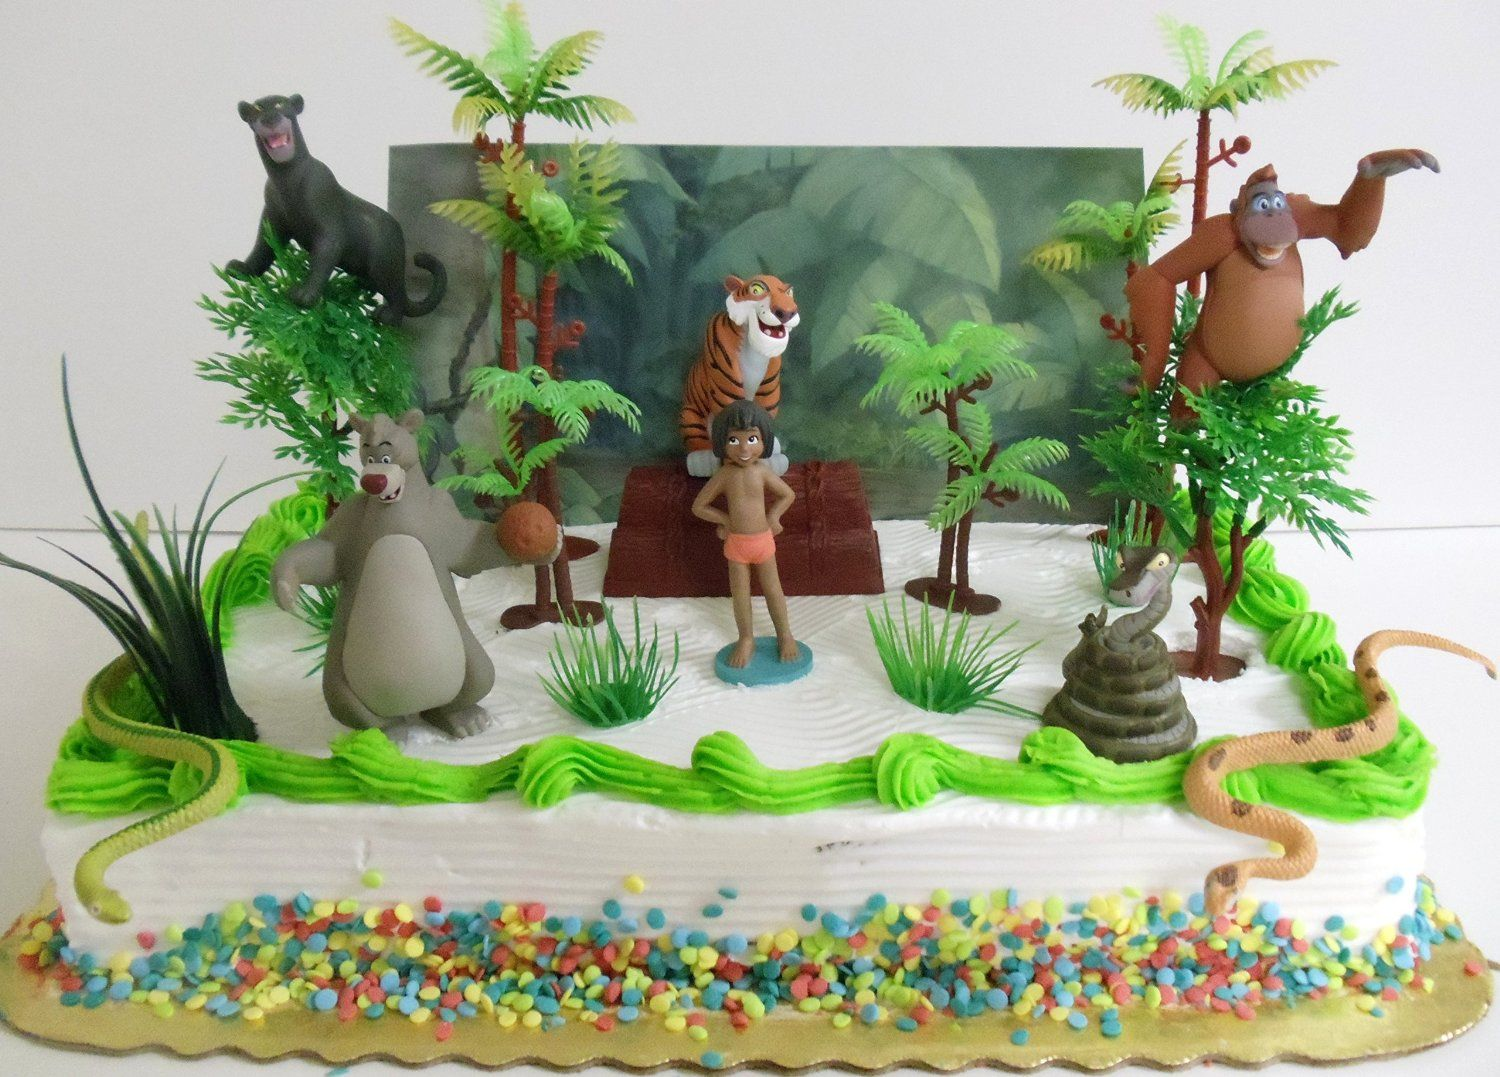 Amazon Jungle Book 17 Piece Birthday Cake Topper Set